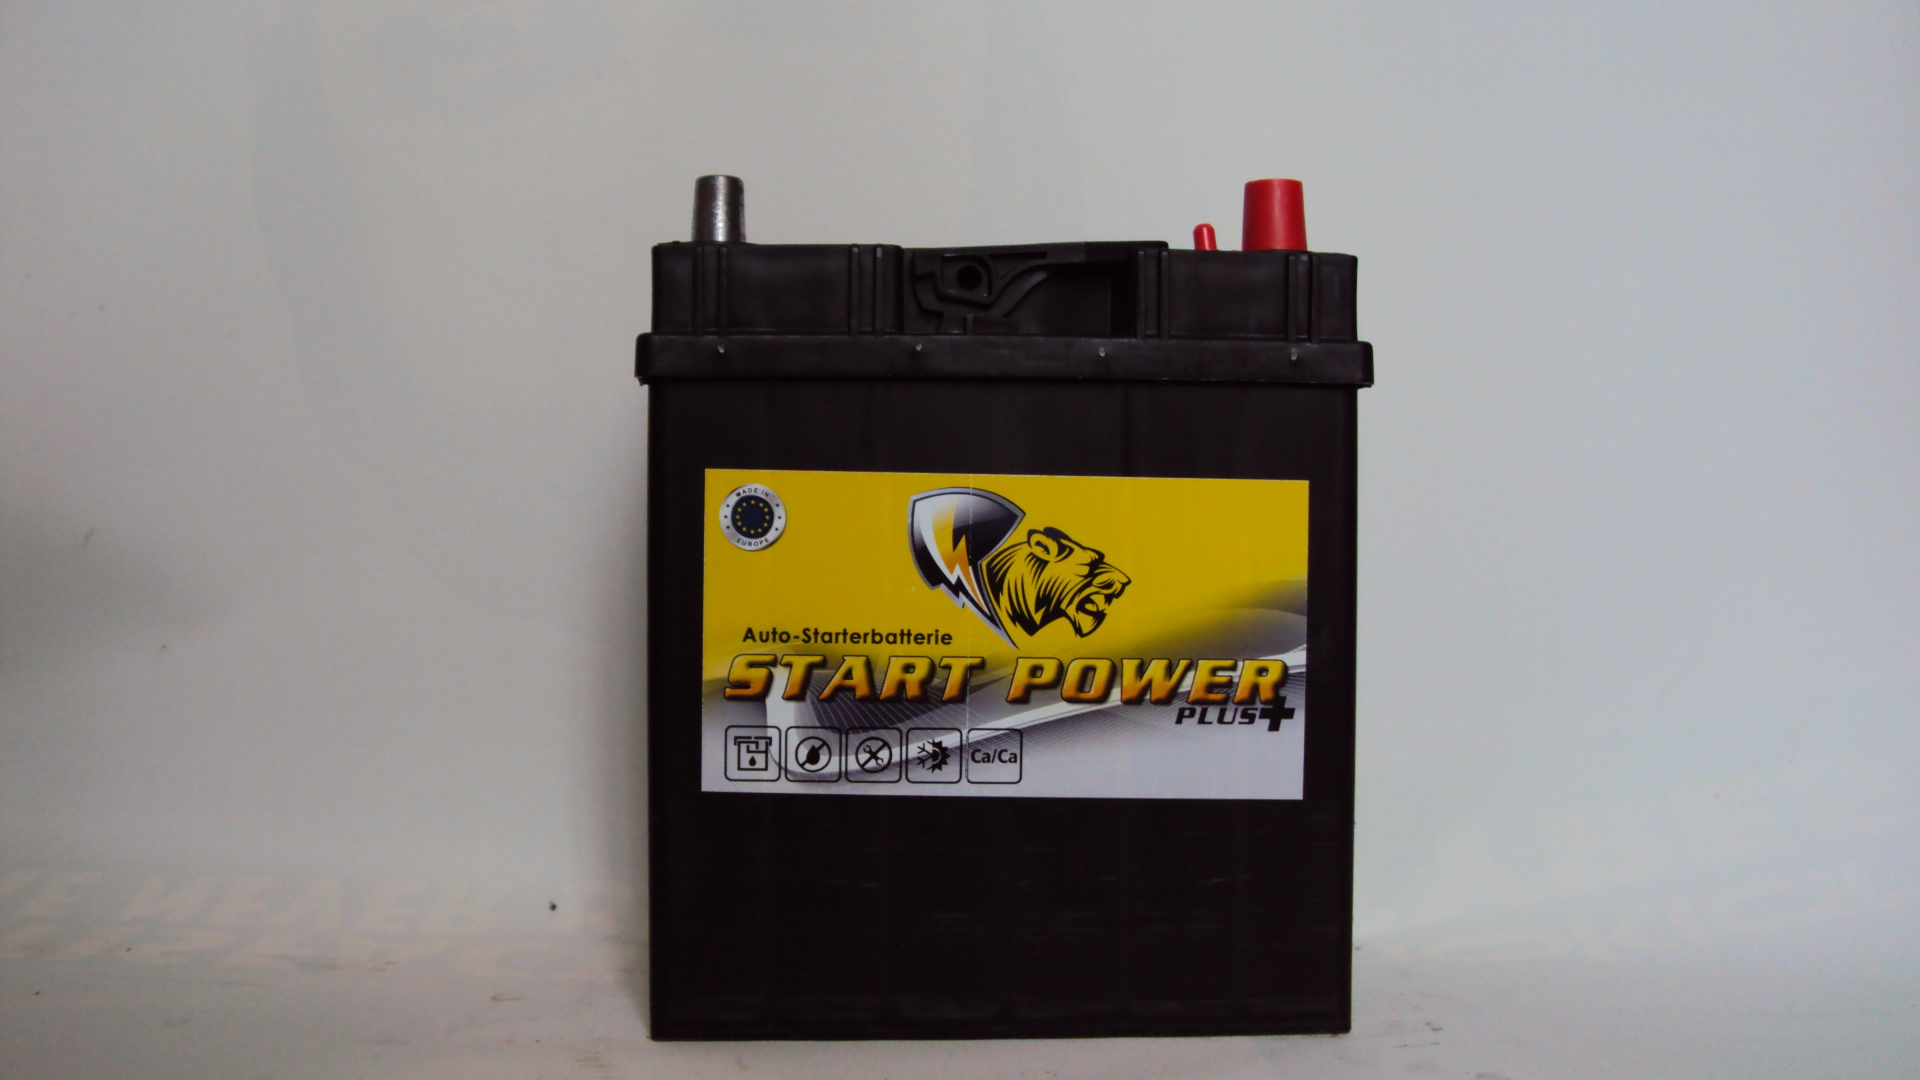 Start-Power-Asia-12V--45-Ah-jobb--vekony-auto-akkumulator-